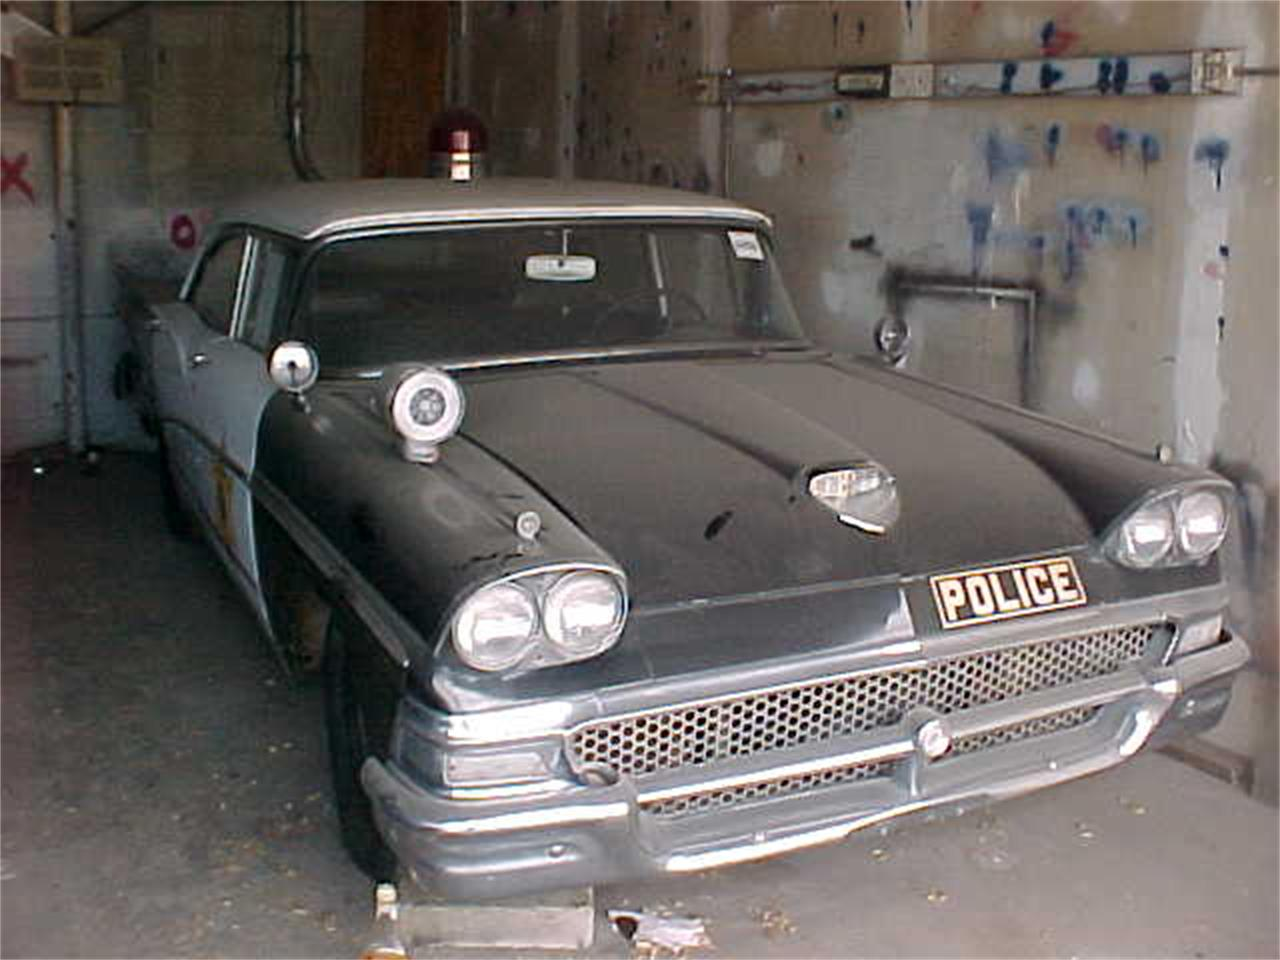 Police Cars For Sale >> For Sale 1958 Ford Police Car In Salt Lake City Utah